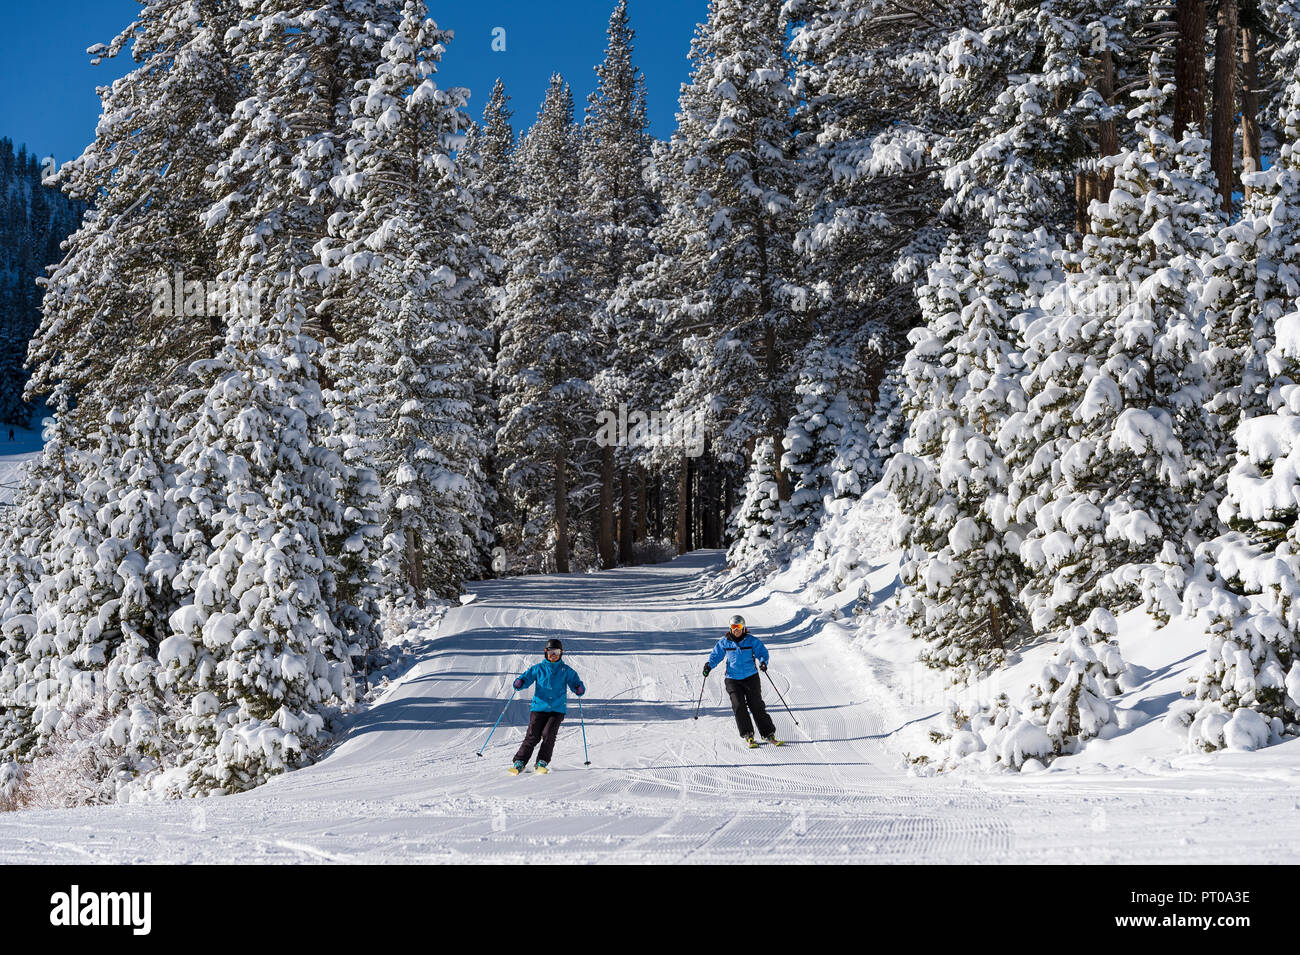 Fresh snowfall at Mt. Rose Ski Tahoe, the closest ski resort to Reno, Nevada in the mountains surrounding Lake Tahoe. Stock Photo